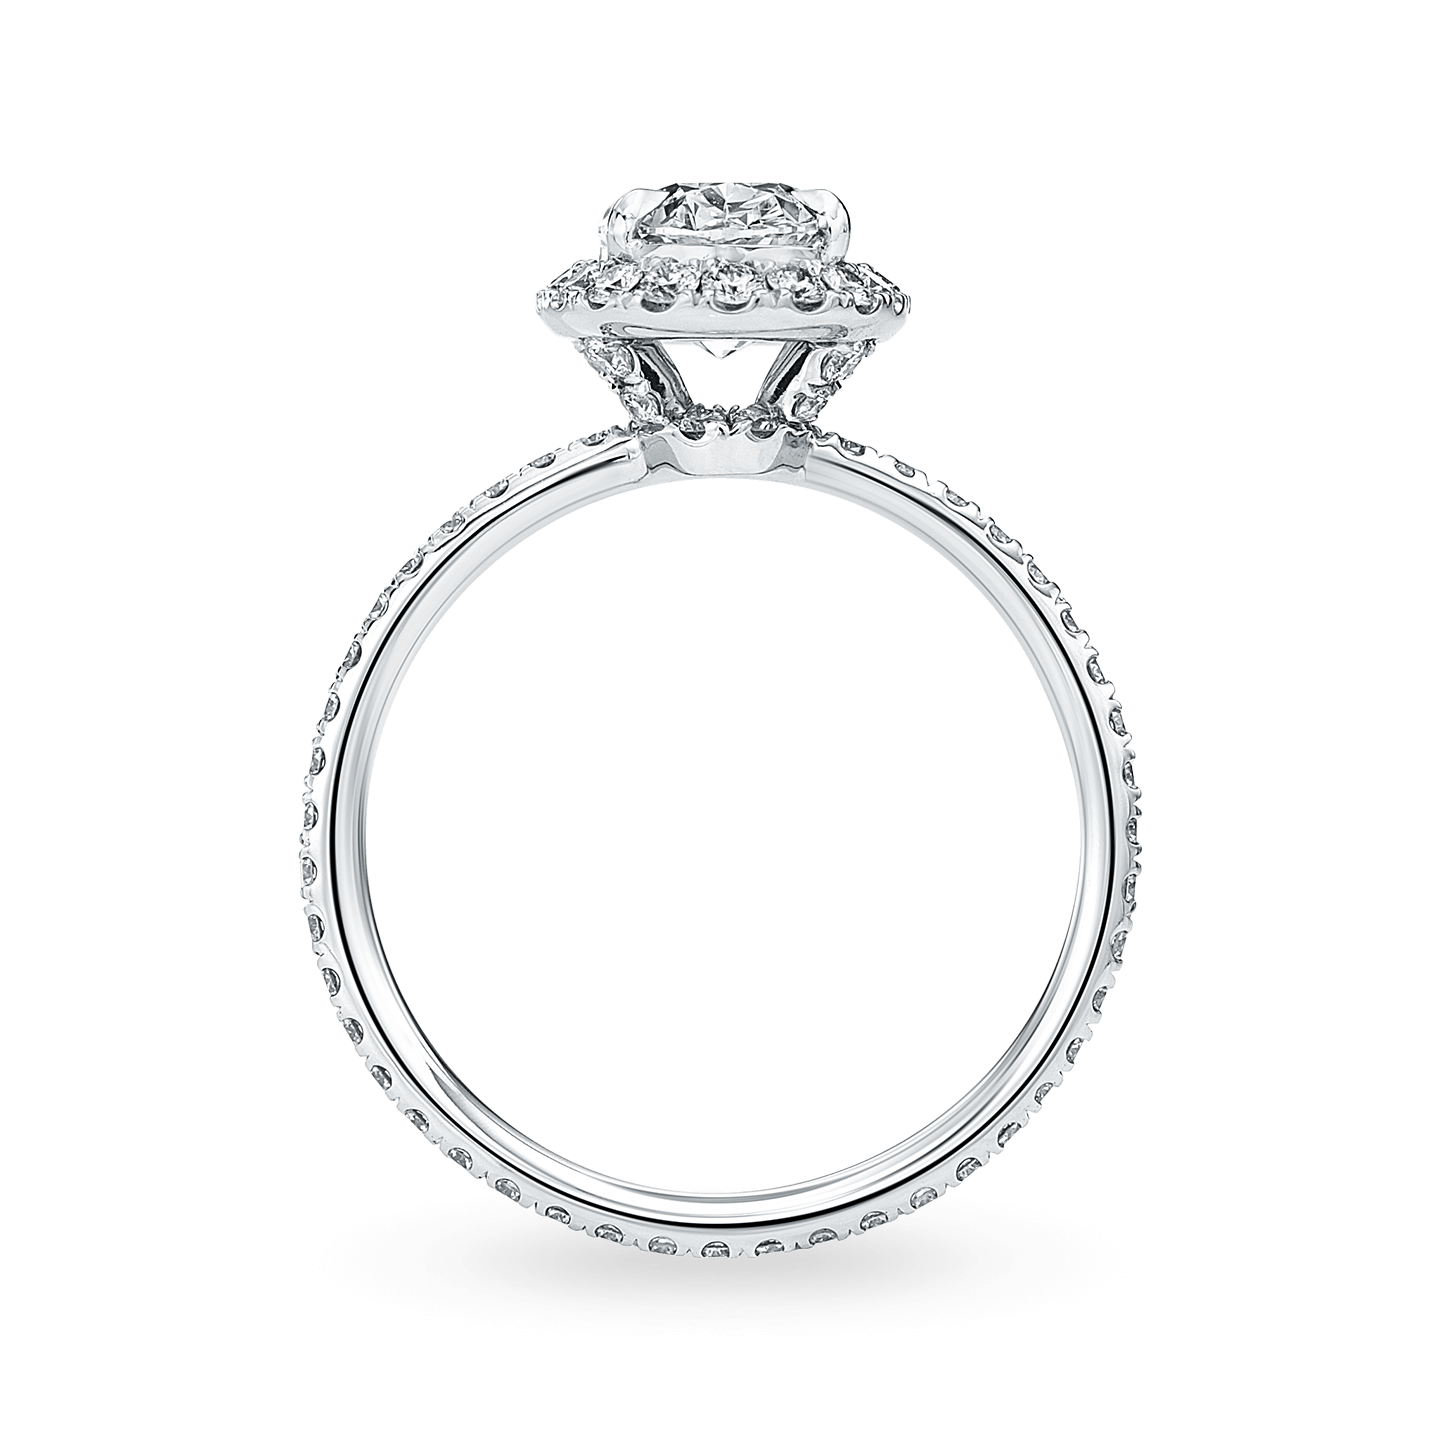 The One Oval-Shaped Diamond Micropavé Engagement Ring, Product Image 2